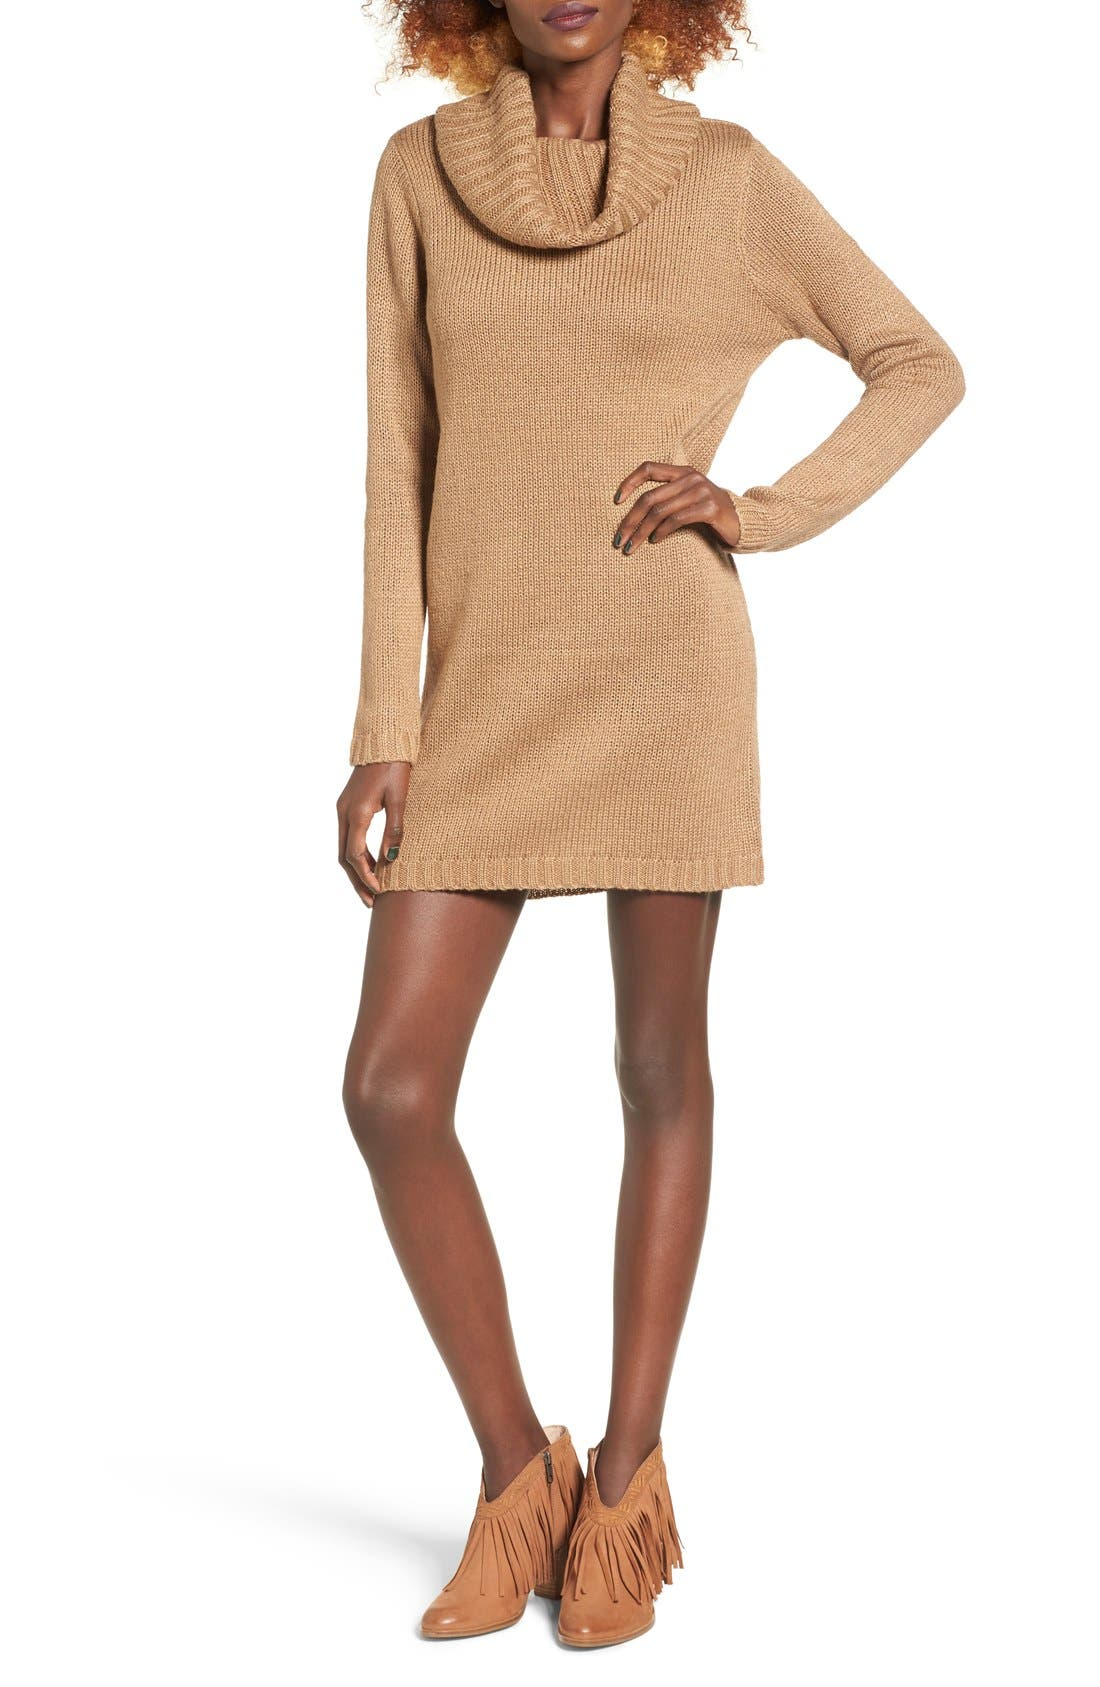 Alternate Image 1 Selected - Cotton Emporium Turtleneck Sweater Dress